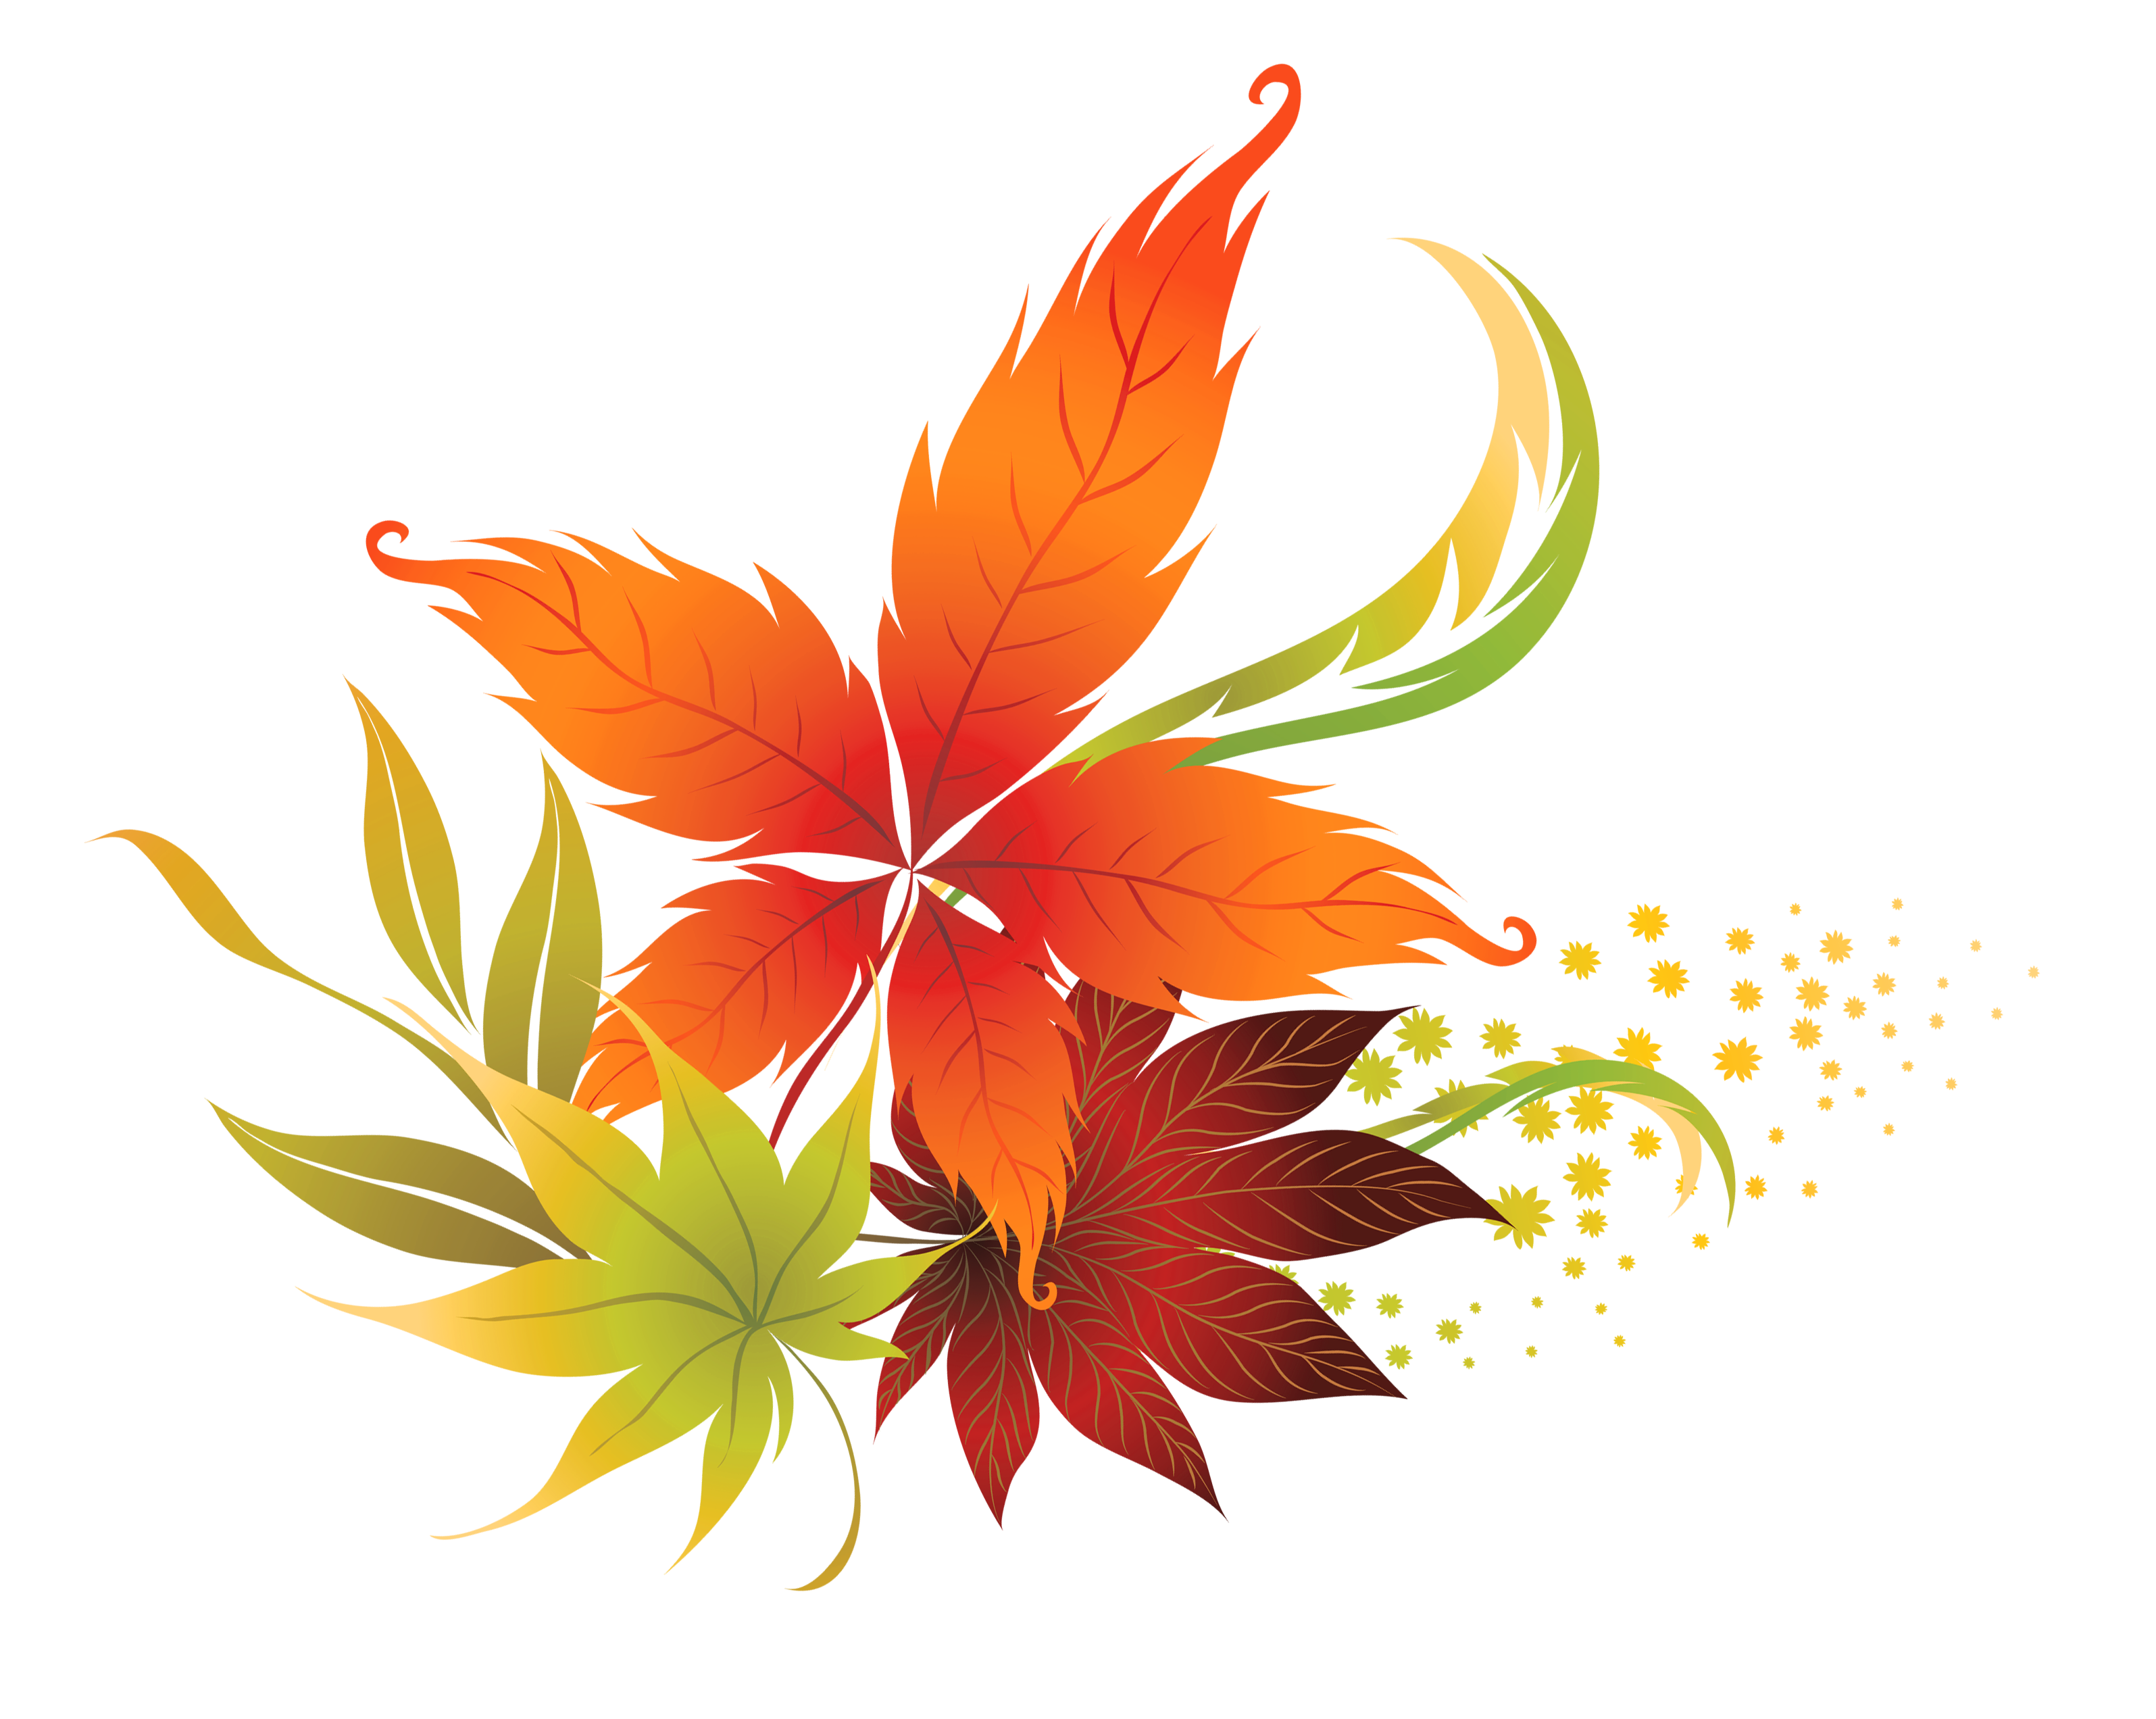 Fall Leaves Fall Leaf Png No Background Free Images 2